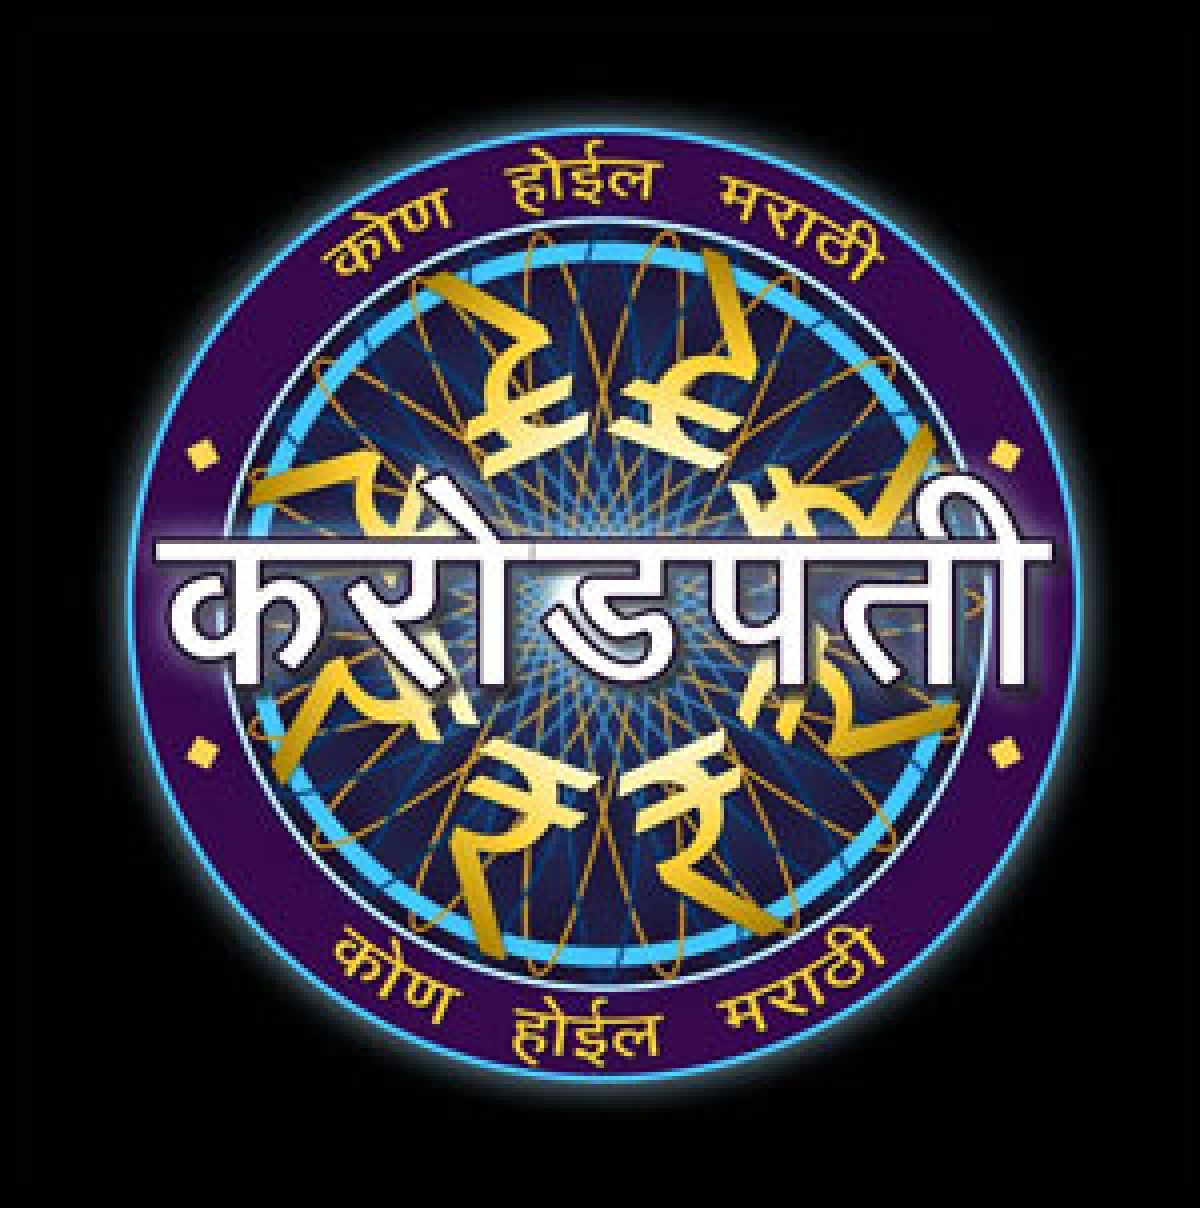 KHMC to offer Rs 2 crore to Marathi audience